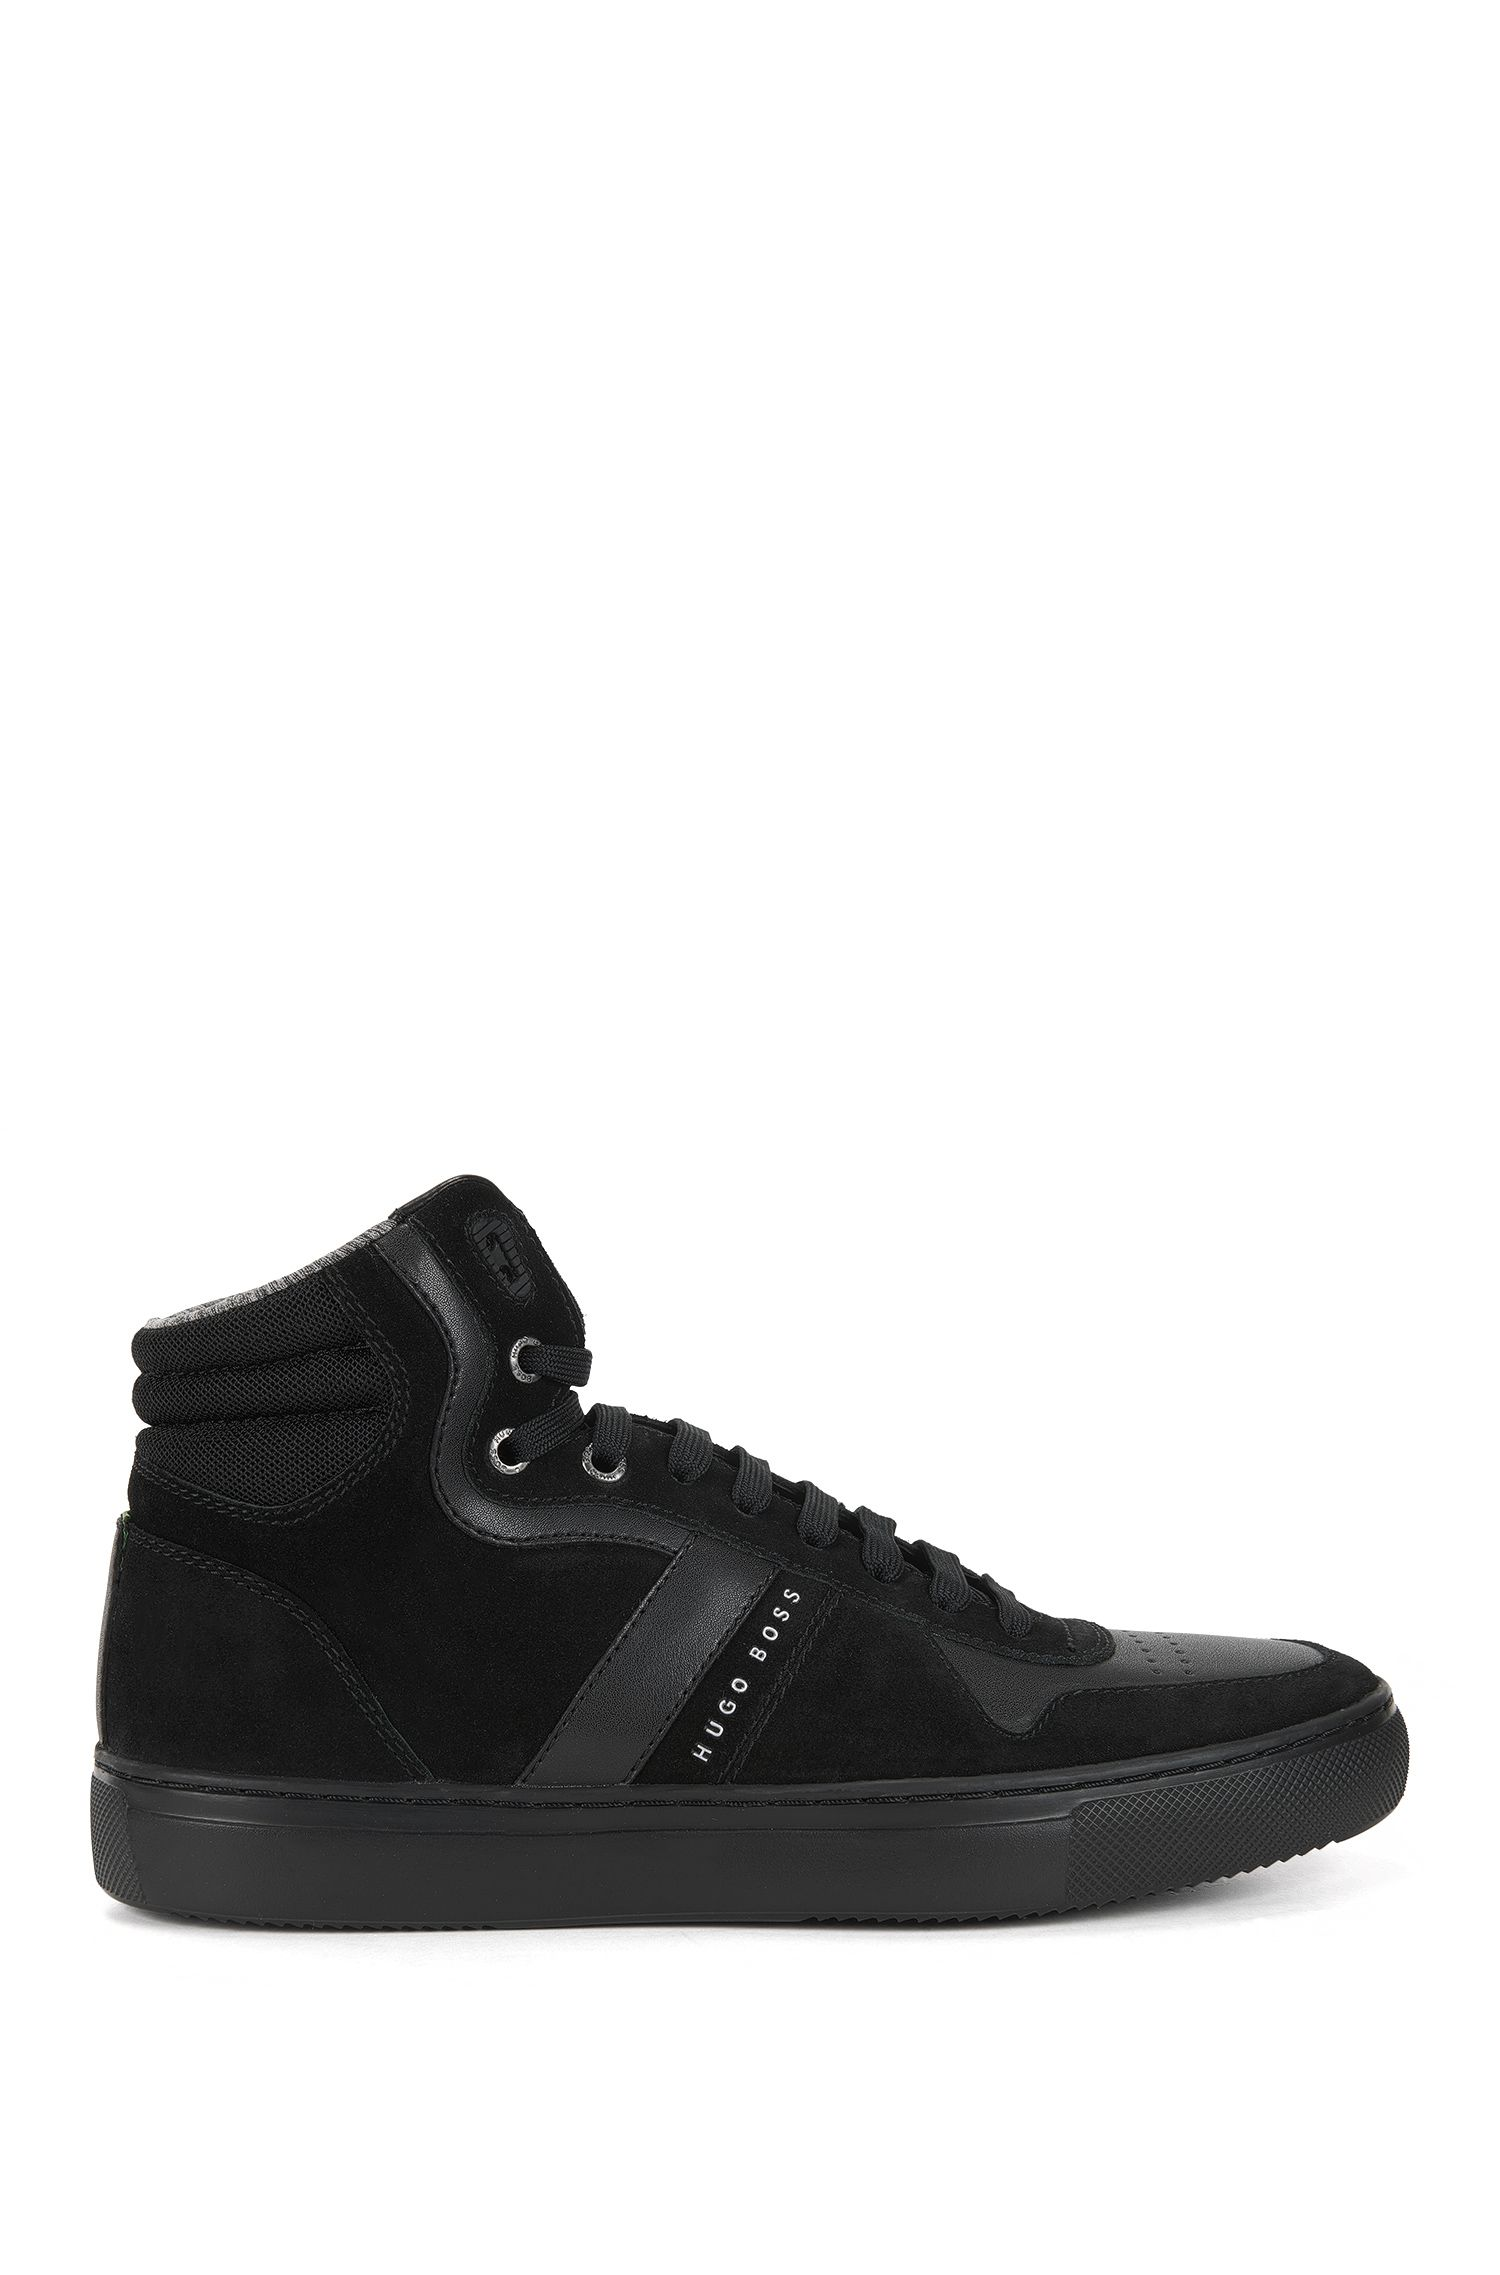 High-top trainers in leather and suede